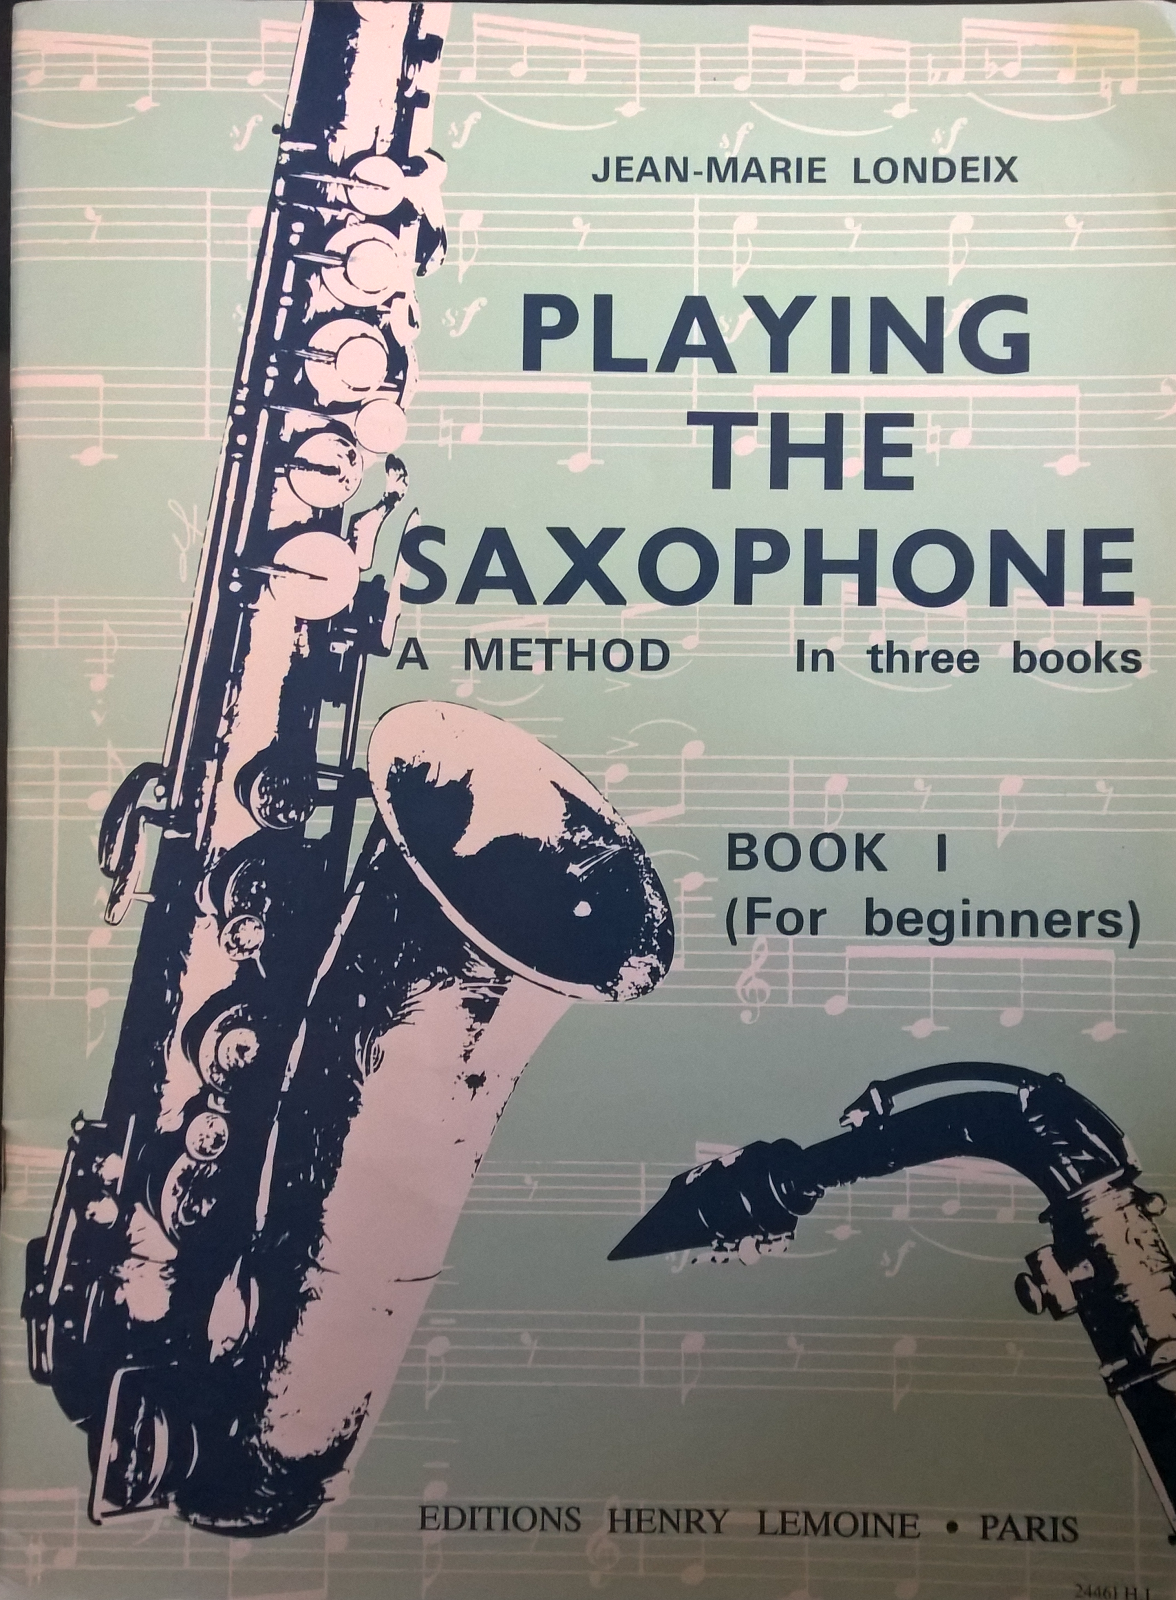 Playing The Saxophone Book 1 Beginners Jean-Marie Londeix Learn Play Tutor S106